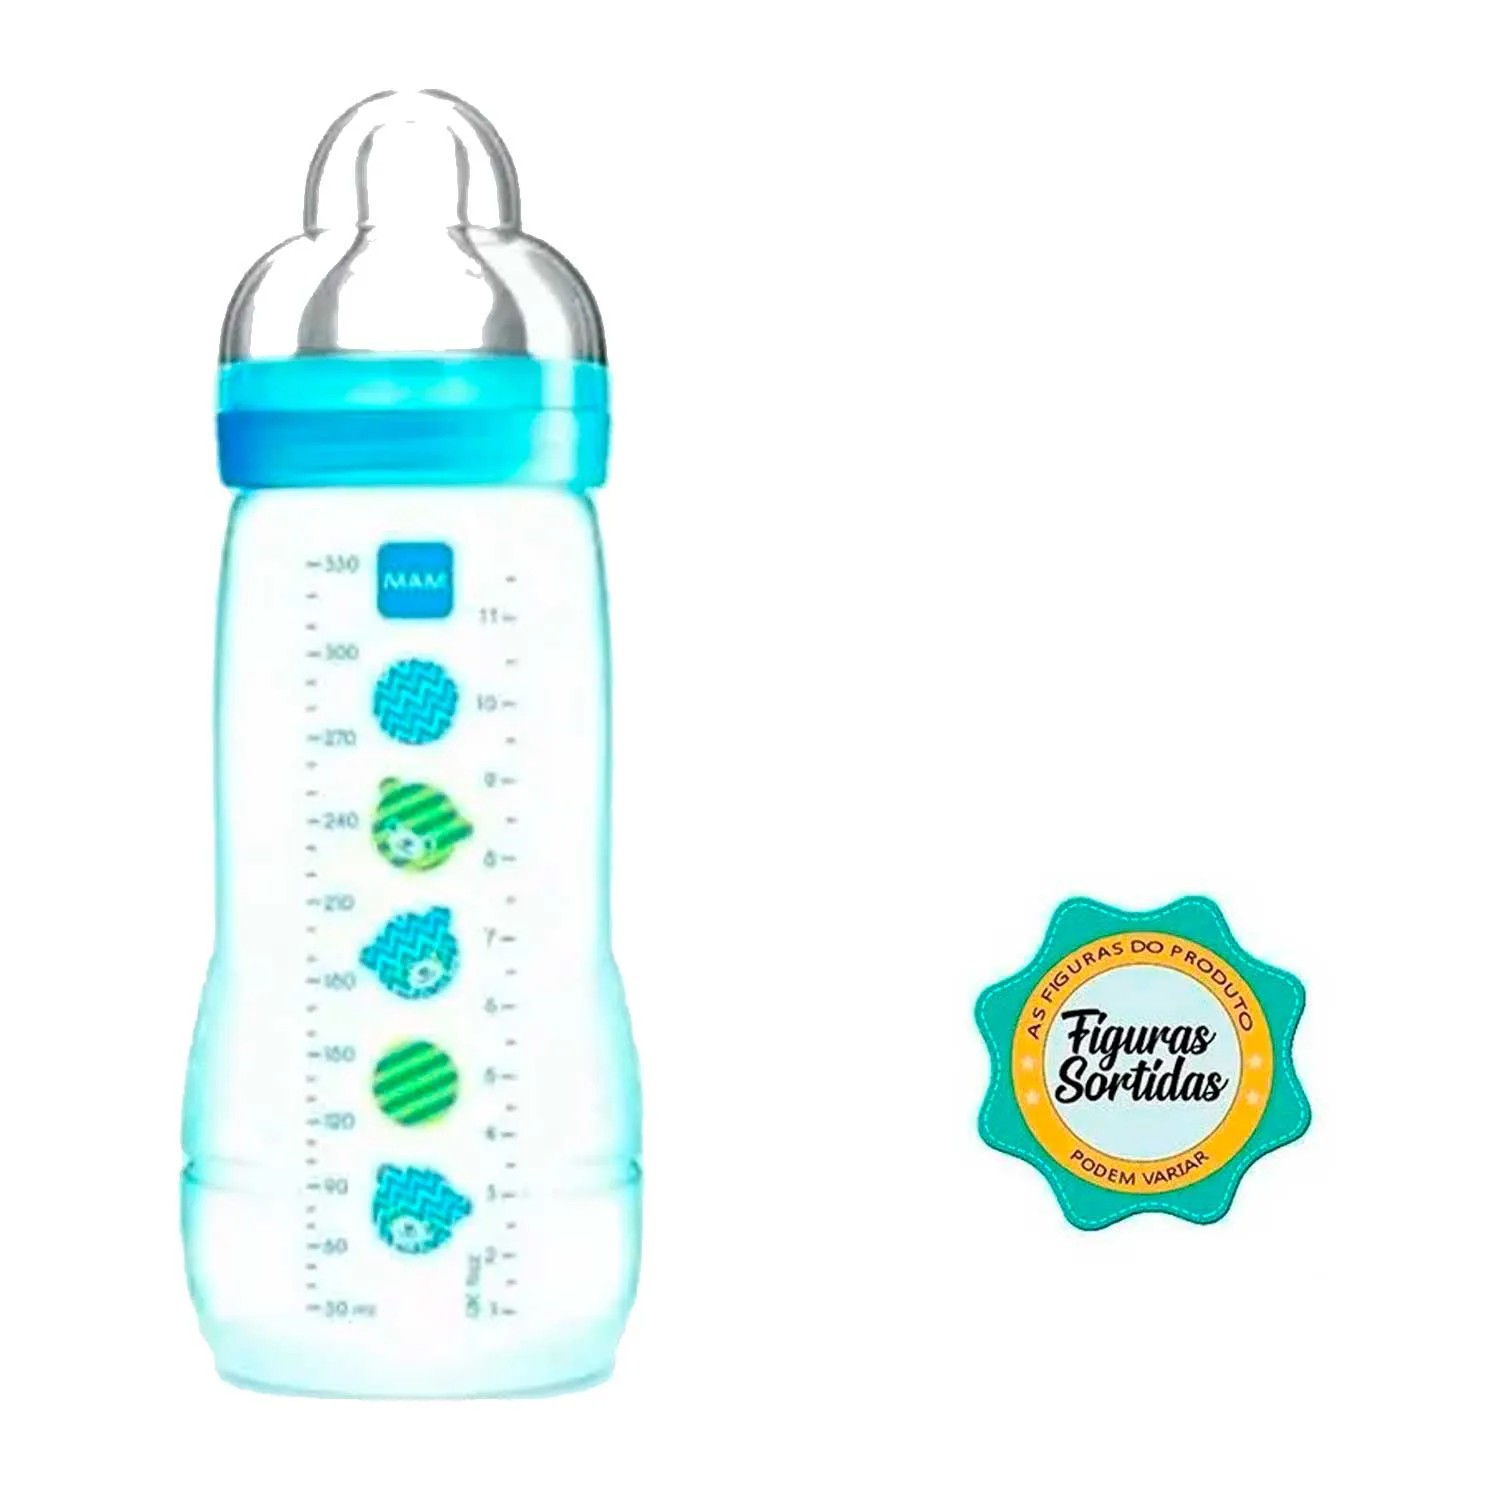 MAMADEIRA EASY ACTIVE FASHION BOTTLE MAM REF:4833 330ML 4 M+